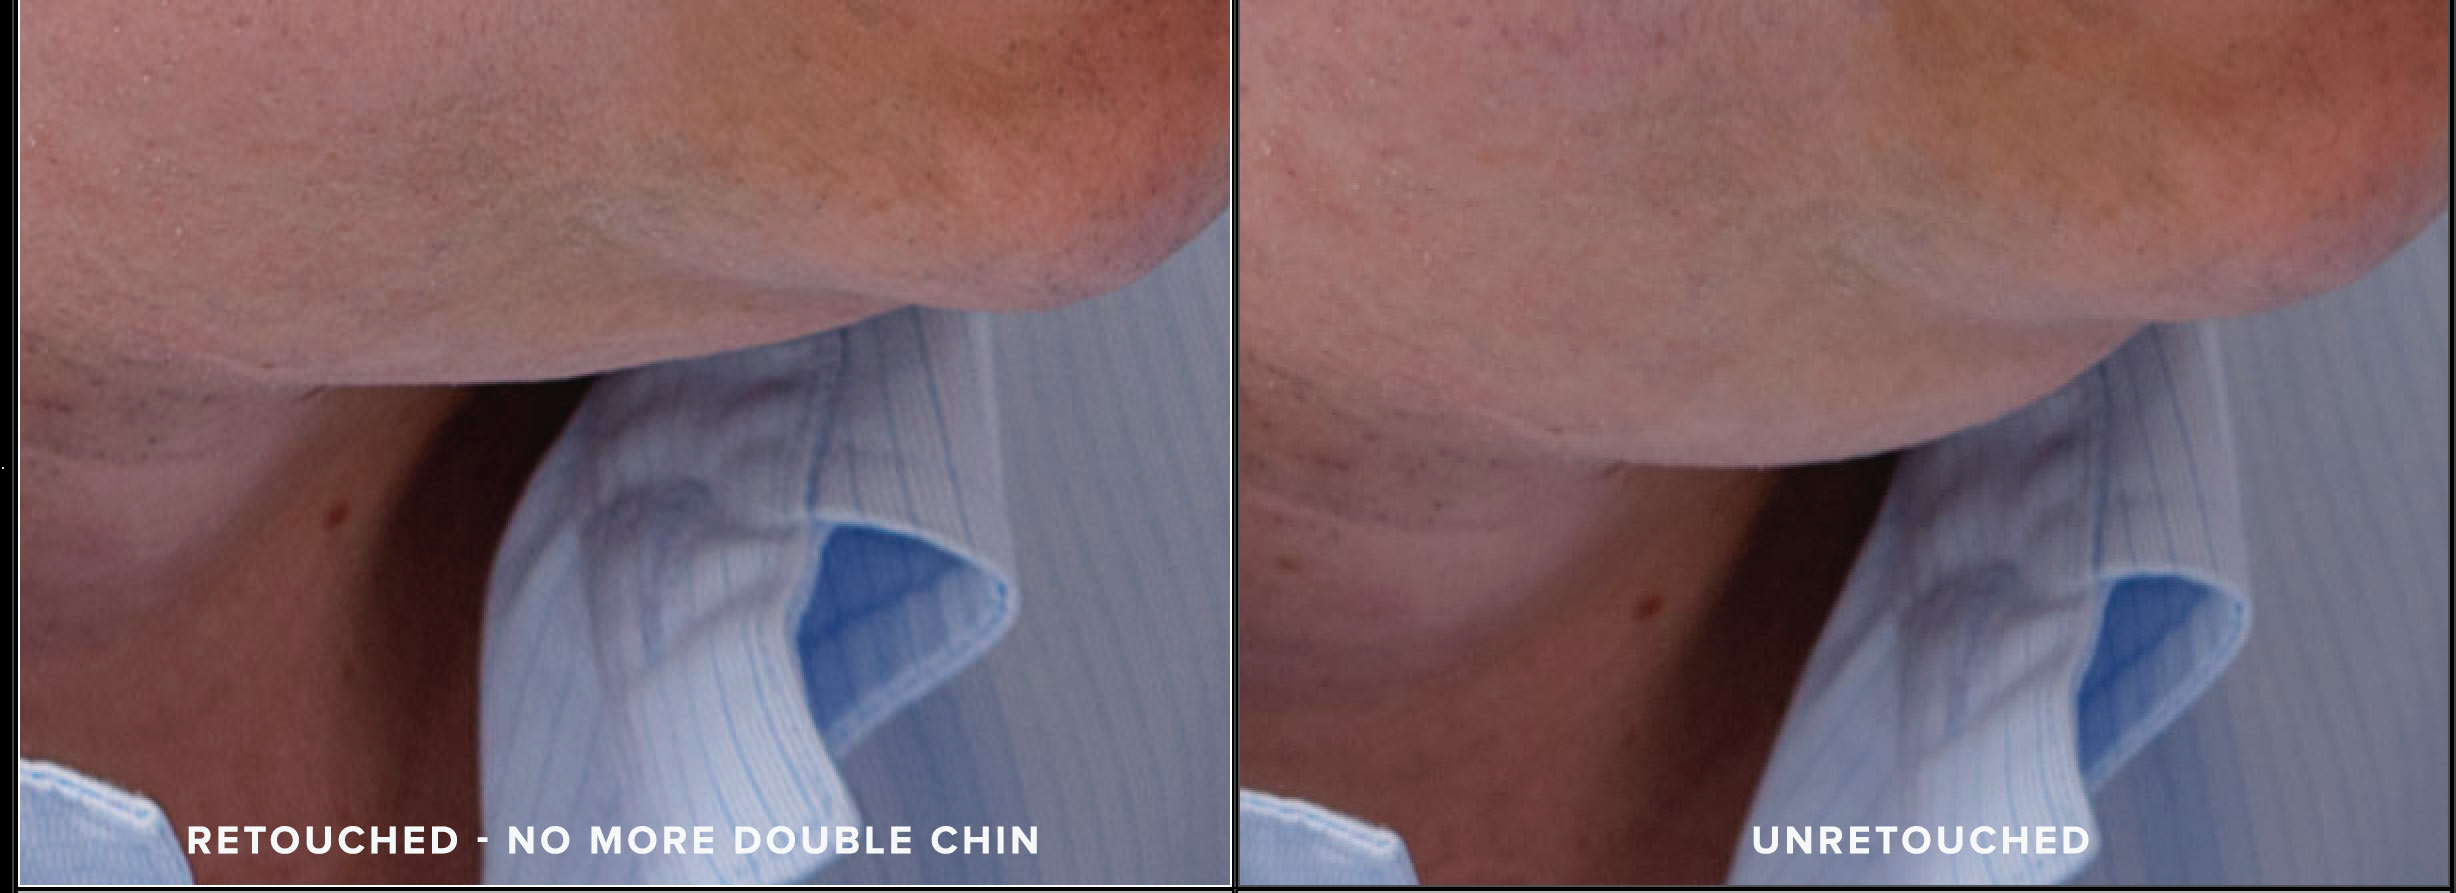 Photo of retouched and unretouched double chin. N. Lalor Photography. Photography Studio in Greenwich, Connecticut